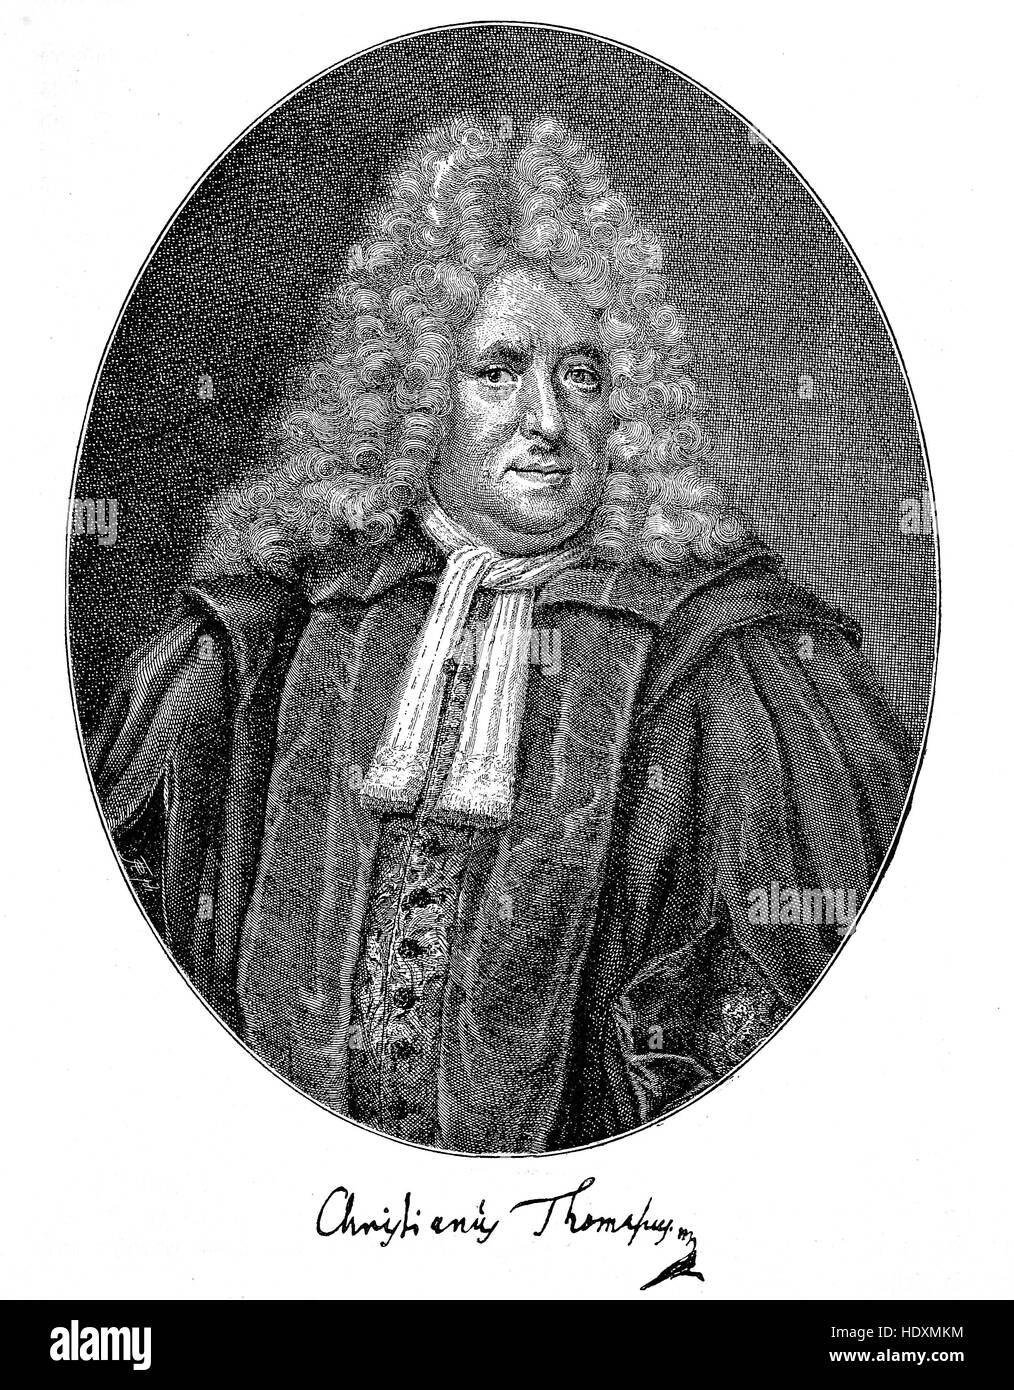 Christian Thomasius, 1655-1728, a German jurist and philosopher, woodcut from the year 1882, digital improved - Stock Image